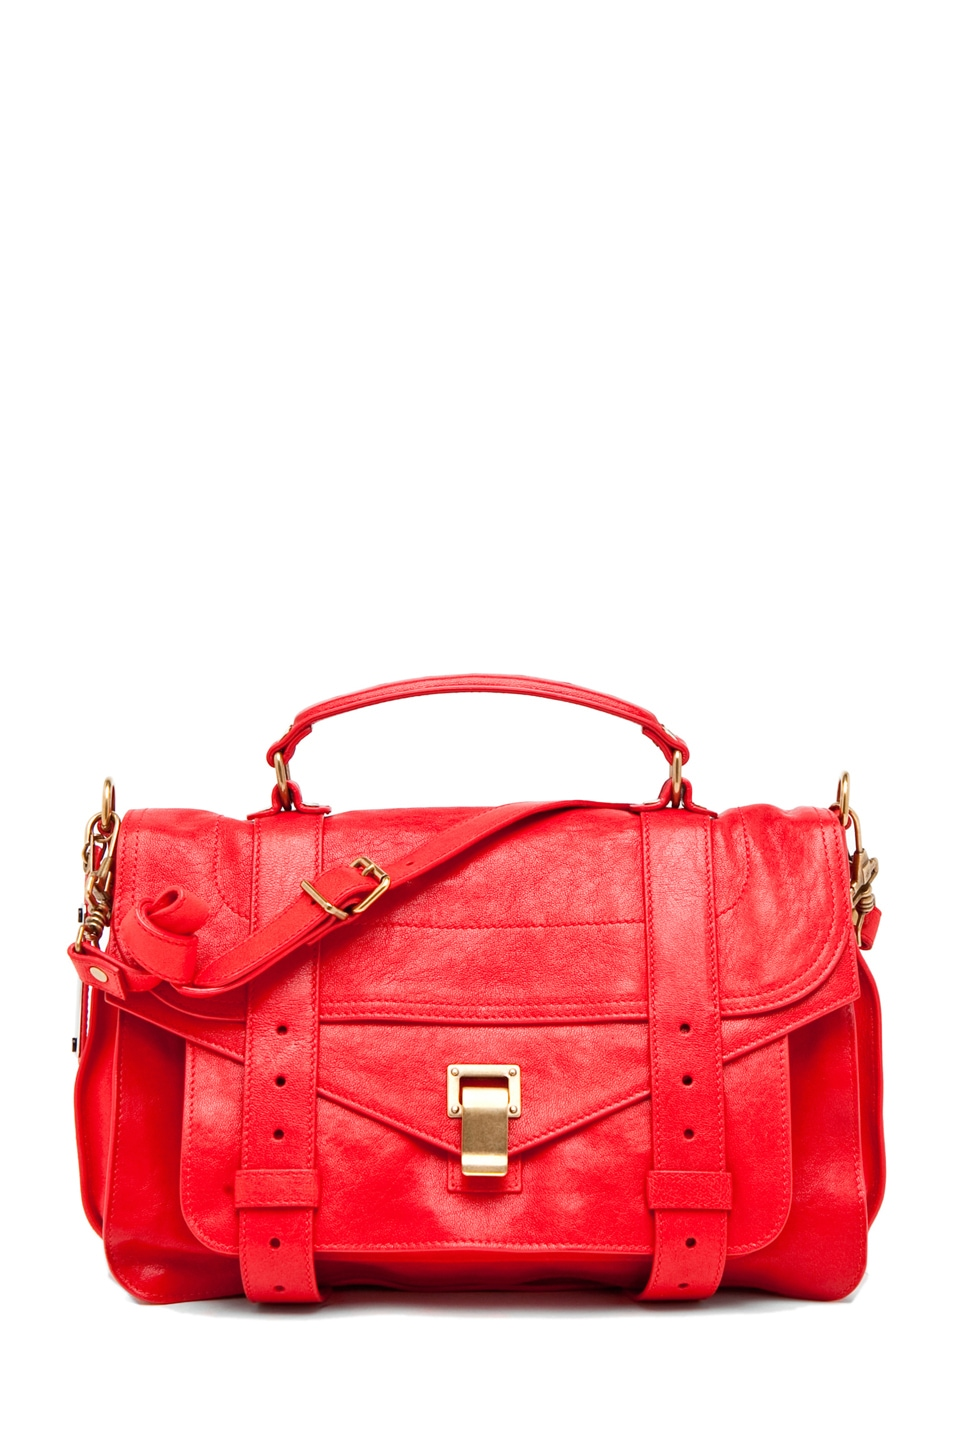 Image 1 of Proenza Schouler PS1 Medium in Bright Red